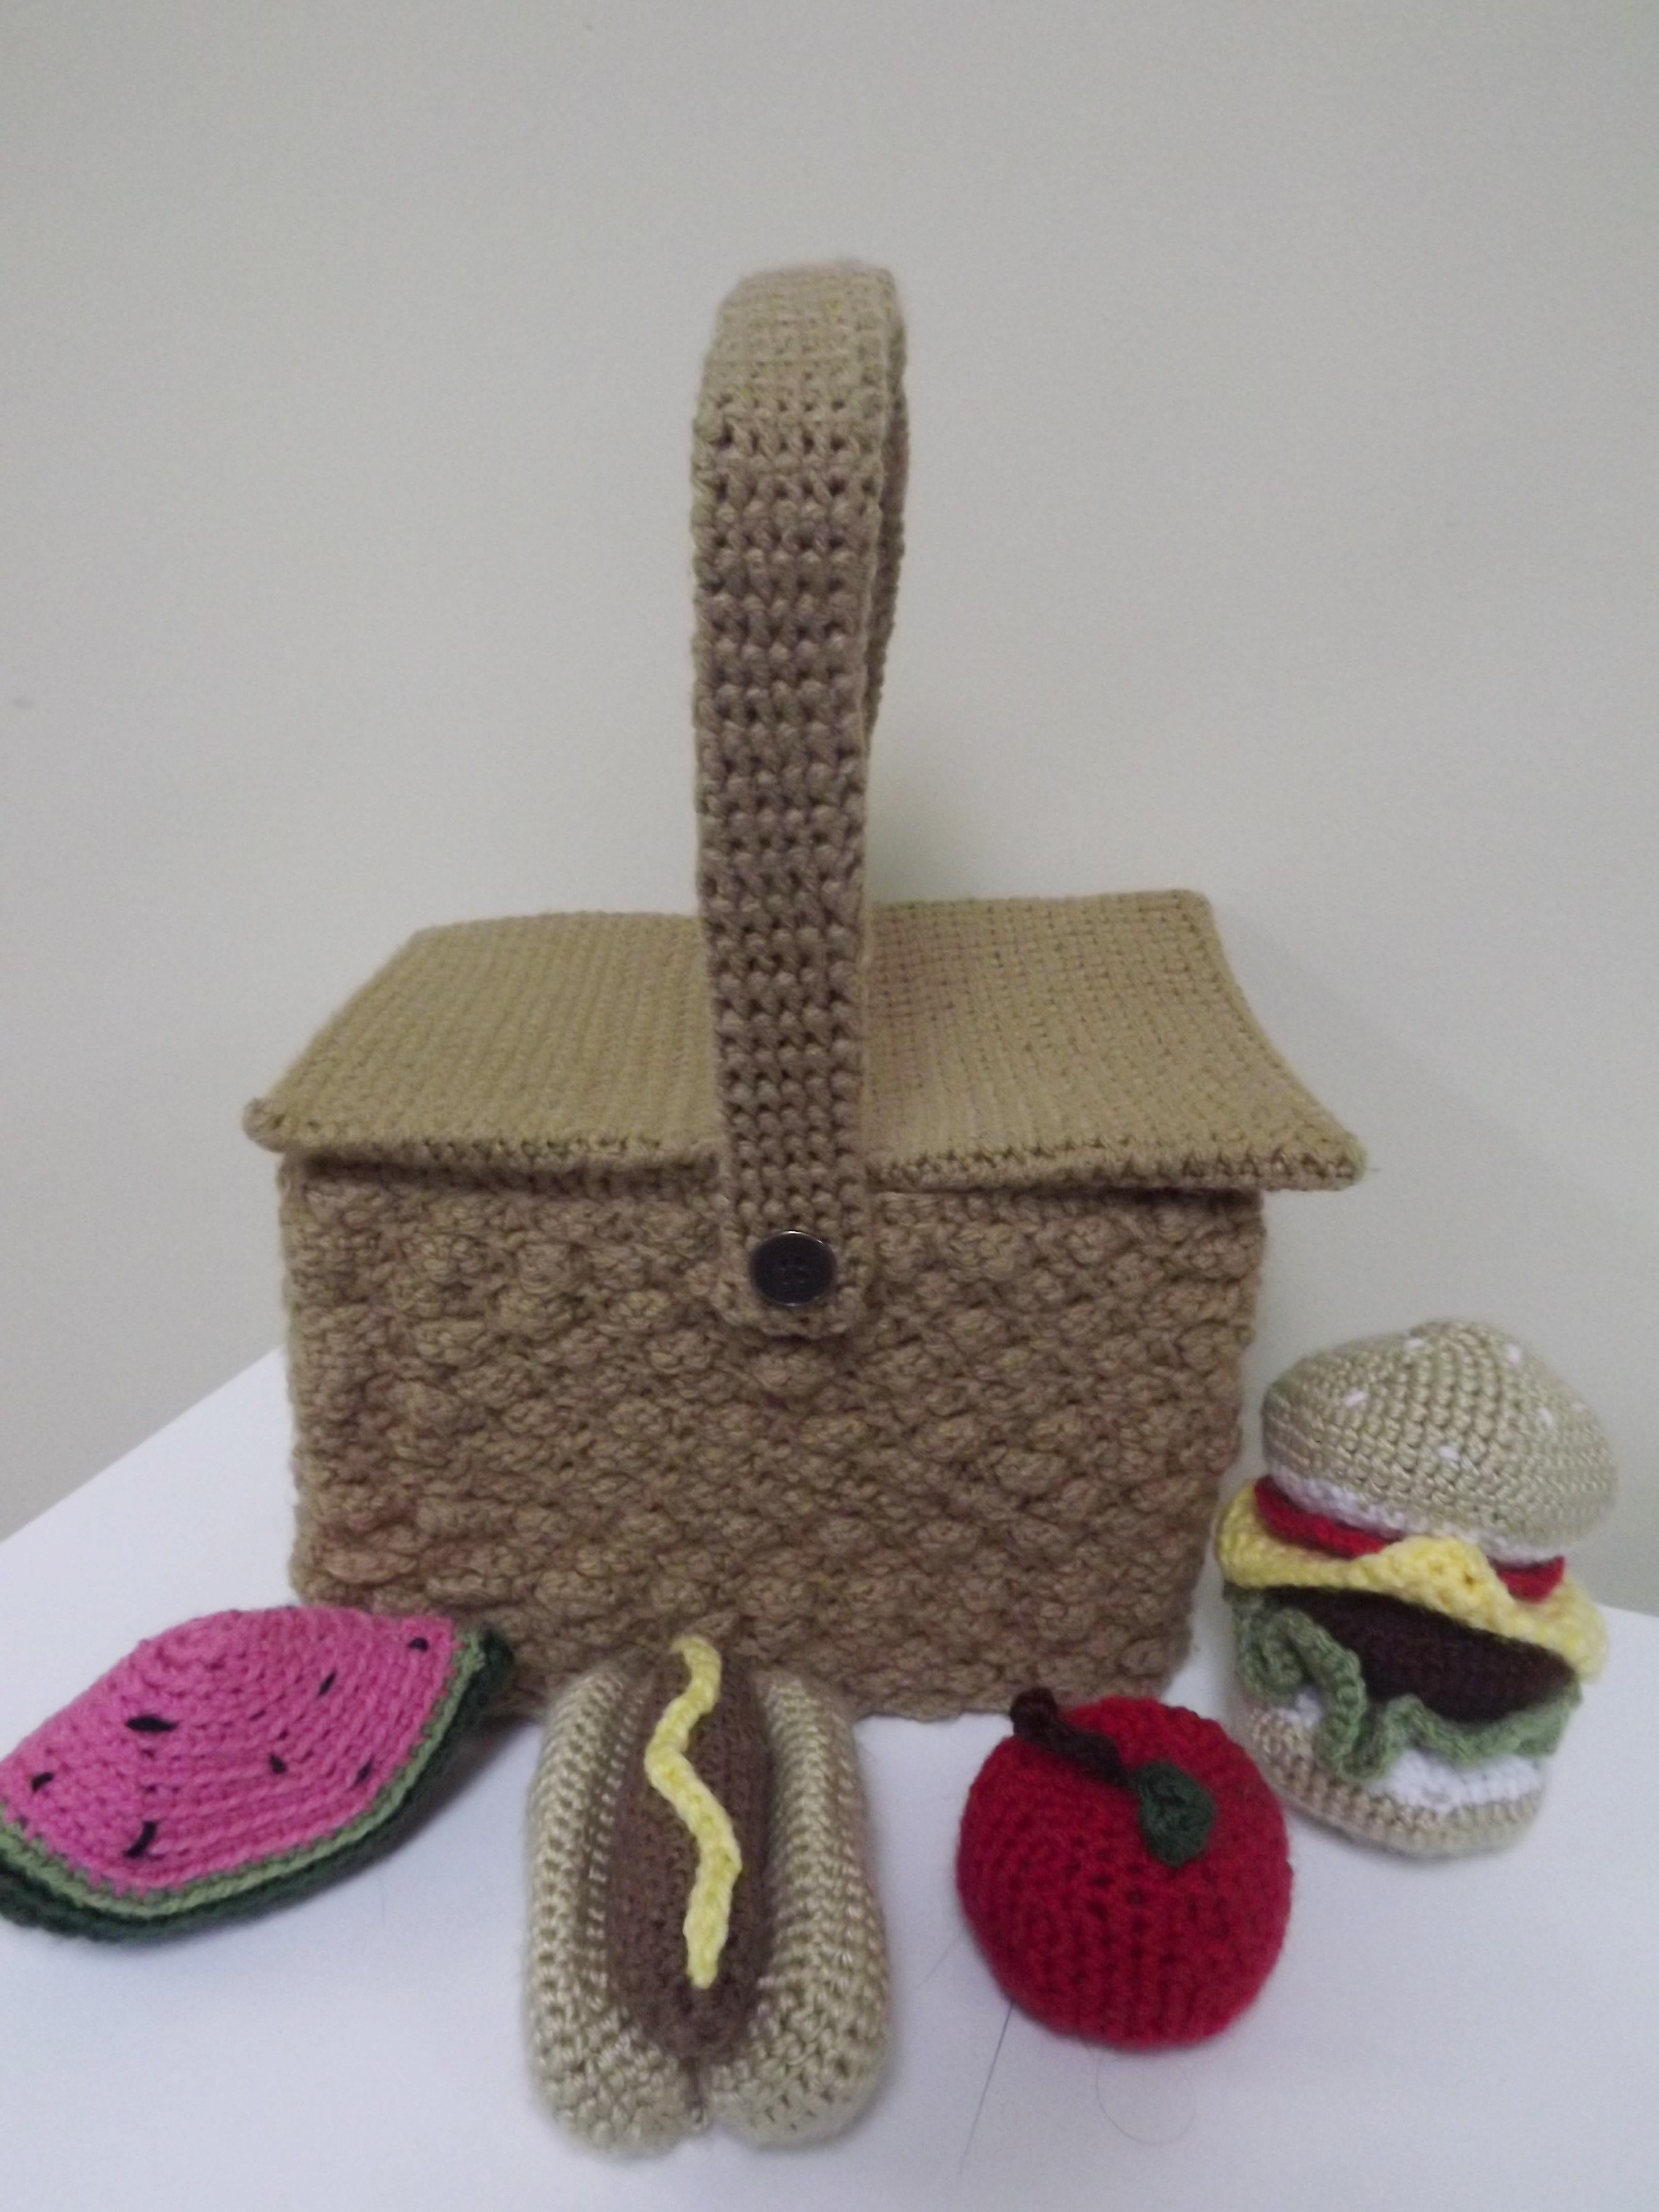 Crochet picnic basket made for my niece the pattern was purchased crochet picnic basket made for my niece the pattern was purchased on etsy crochet bankloansurffo Image collections